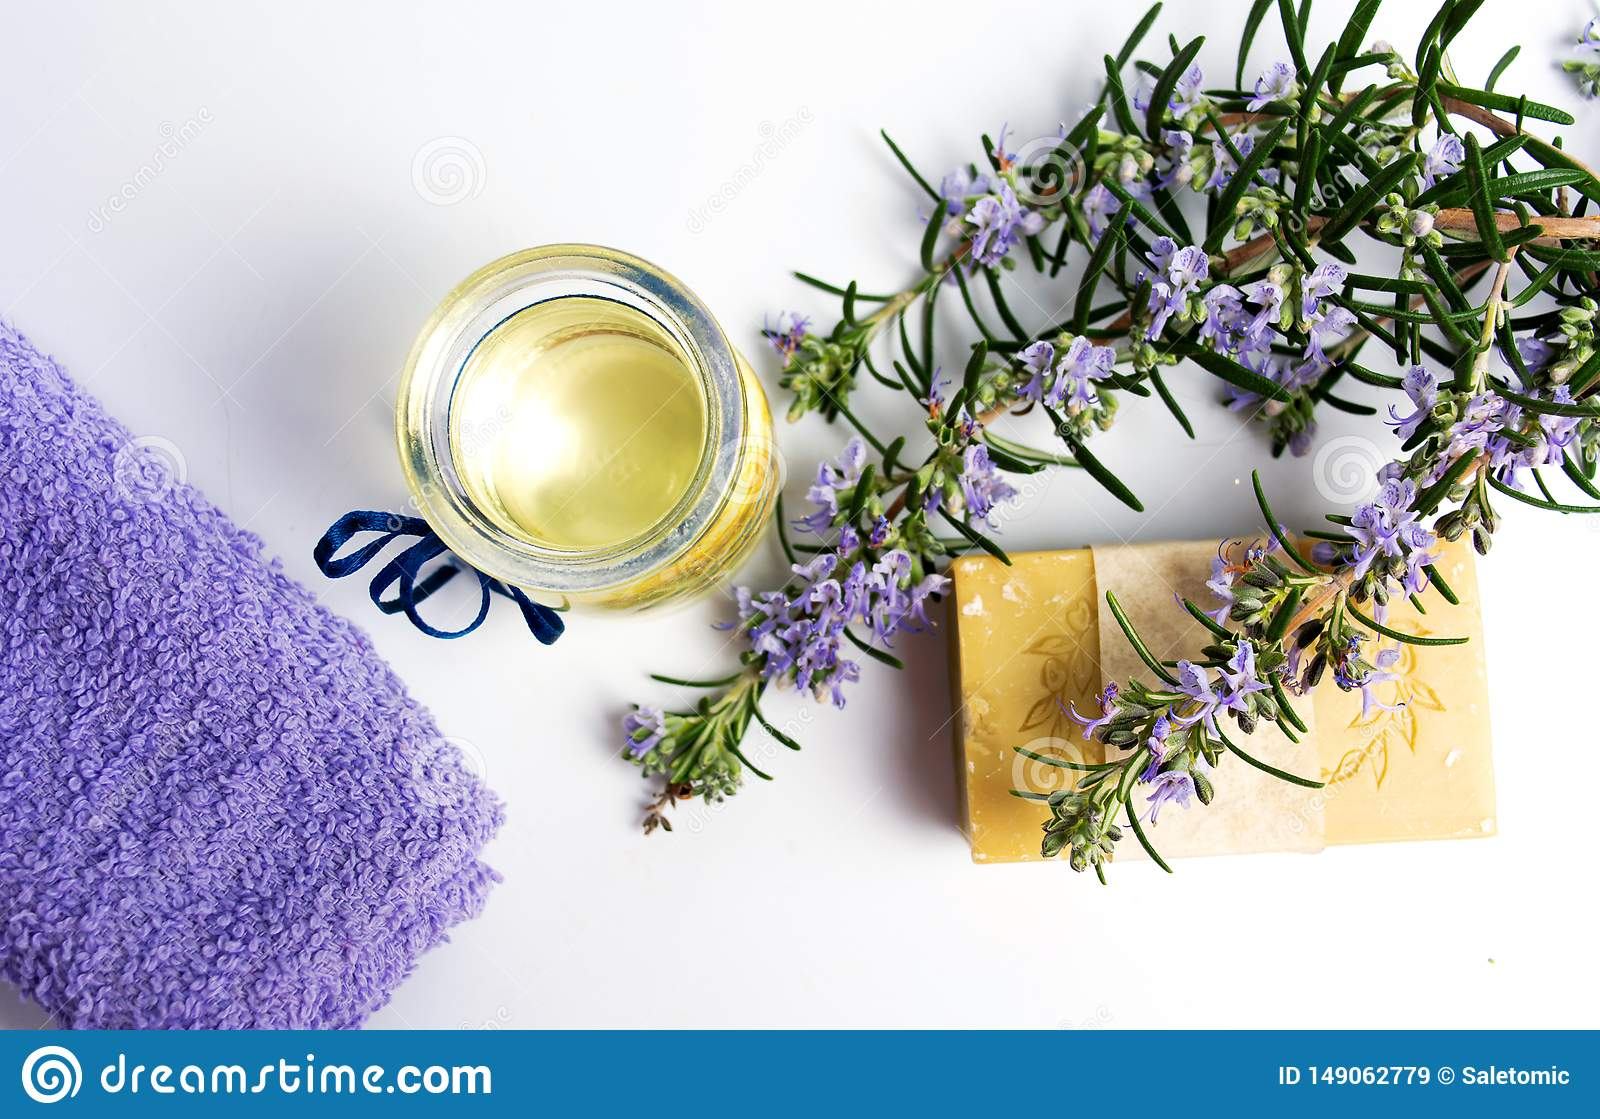 Rosemary plant natural soap with towel